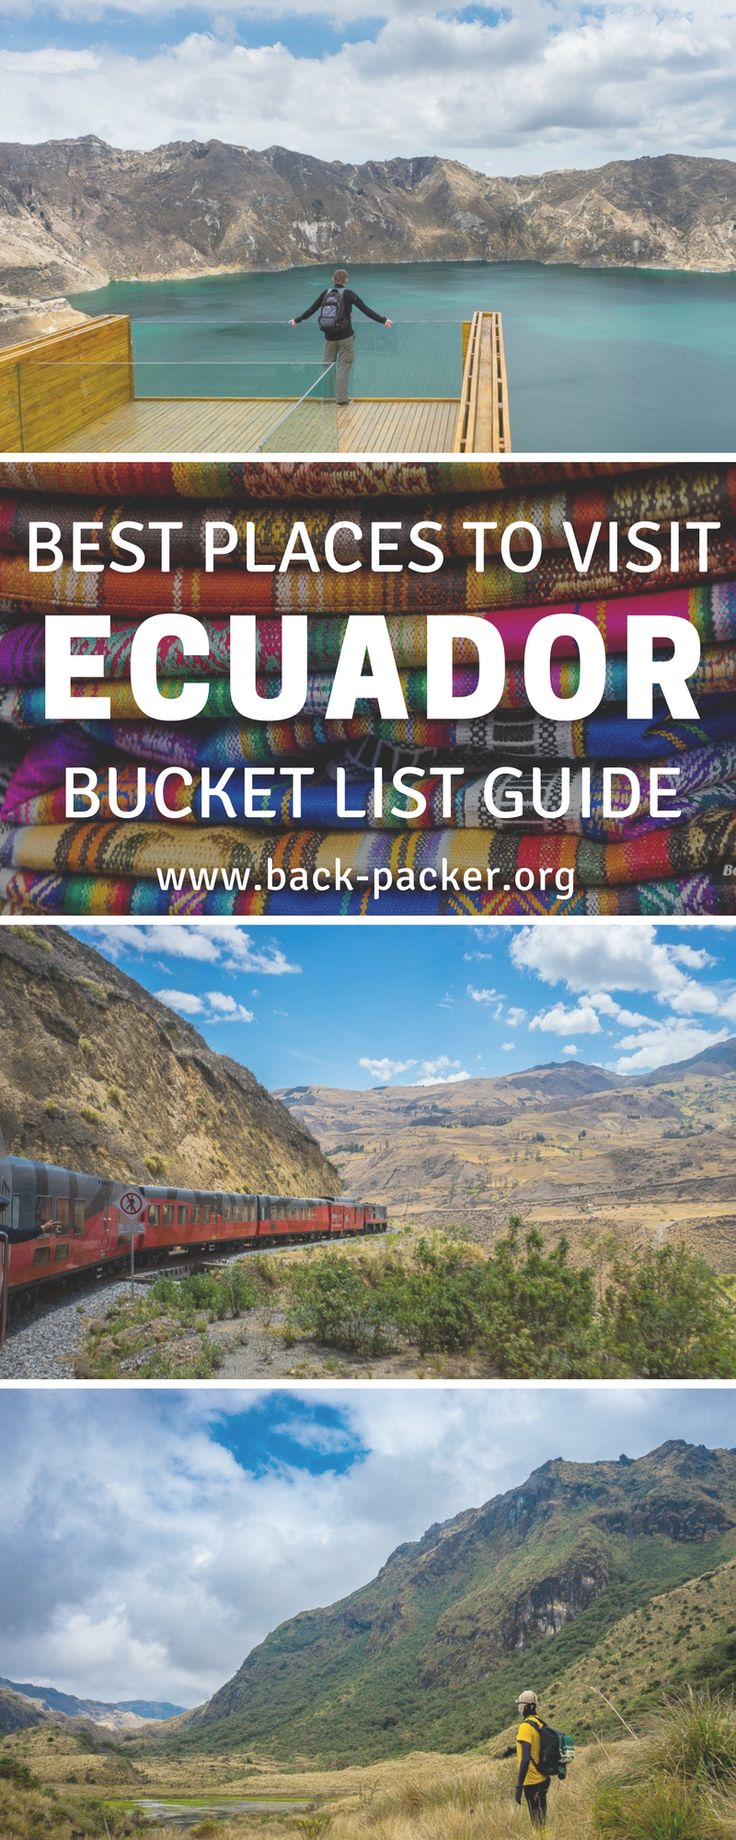 A bucket list worthy guide to exploring Ecuador. While most travelers are familiar with destinations such as the Galapagos Islands and Quito, this guide focuses on more offbeat places that many travelers don't get the chance to experience. Visit an old volcano crater, hike through beautiful national parks, take in the views at Quilotoa. wander old town in Cuenca and more. Places to visit in South America. | Back-packer.org#Ecuador